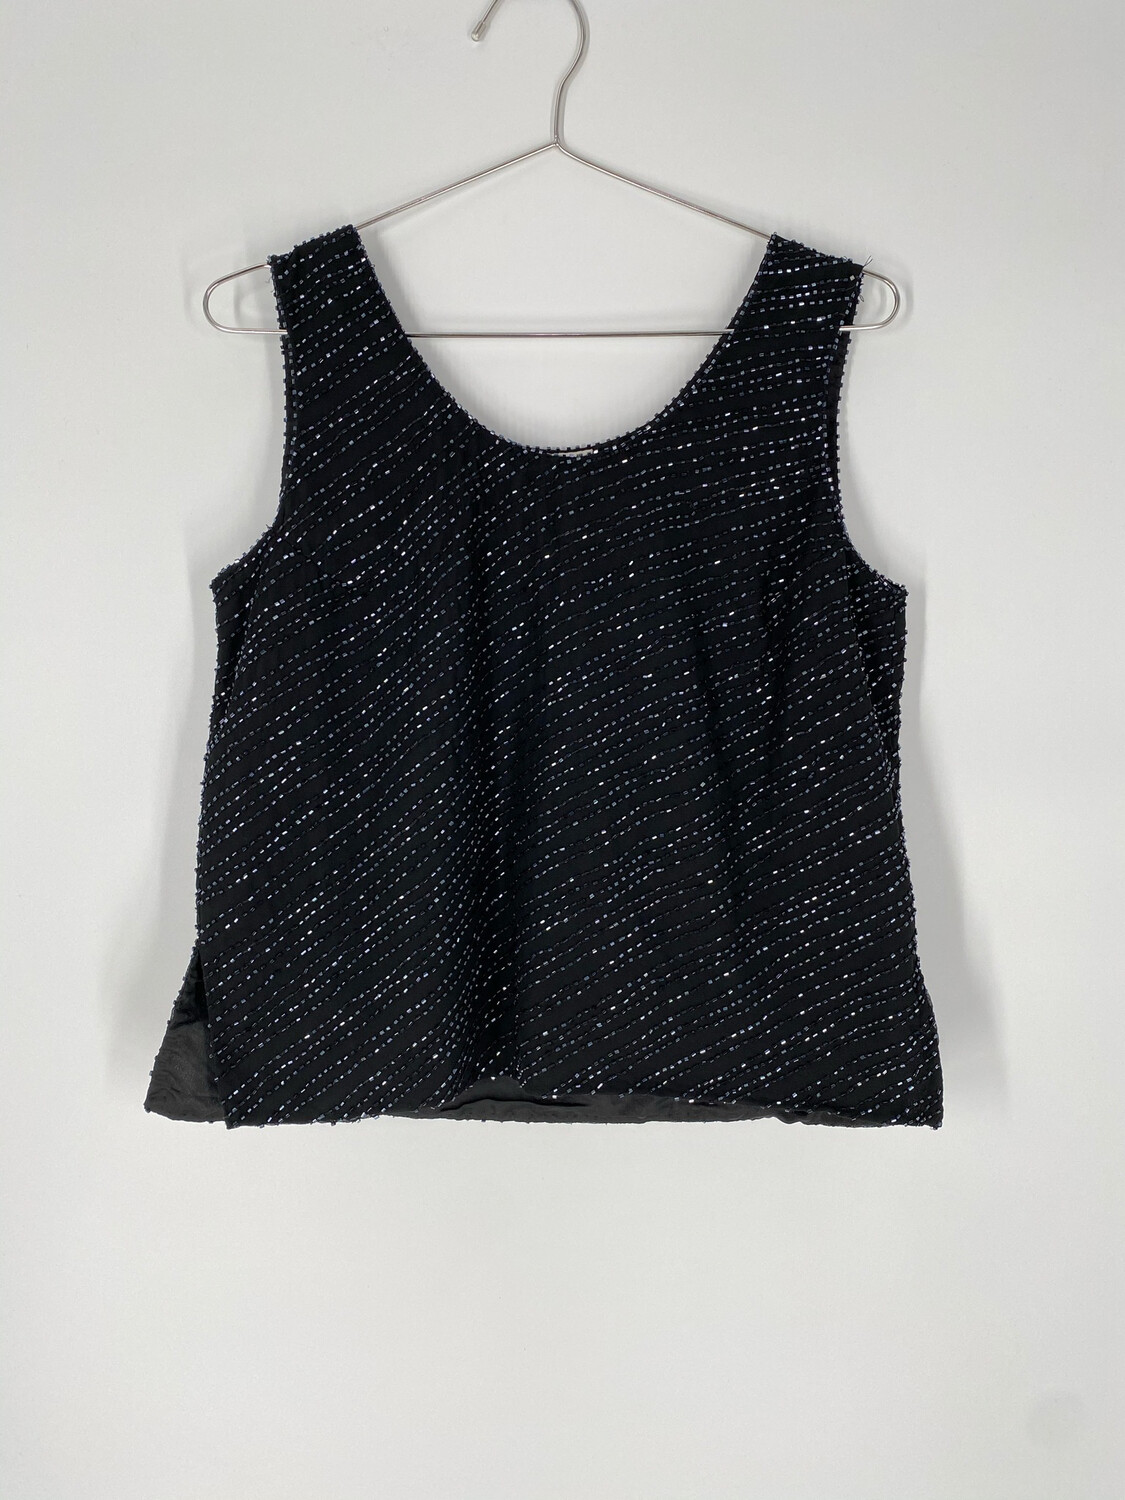 Beaded Sparkly Tank Top Size S